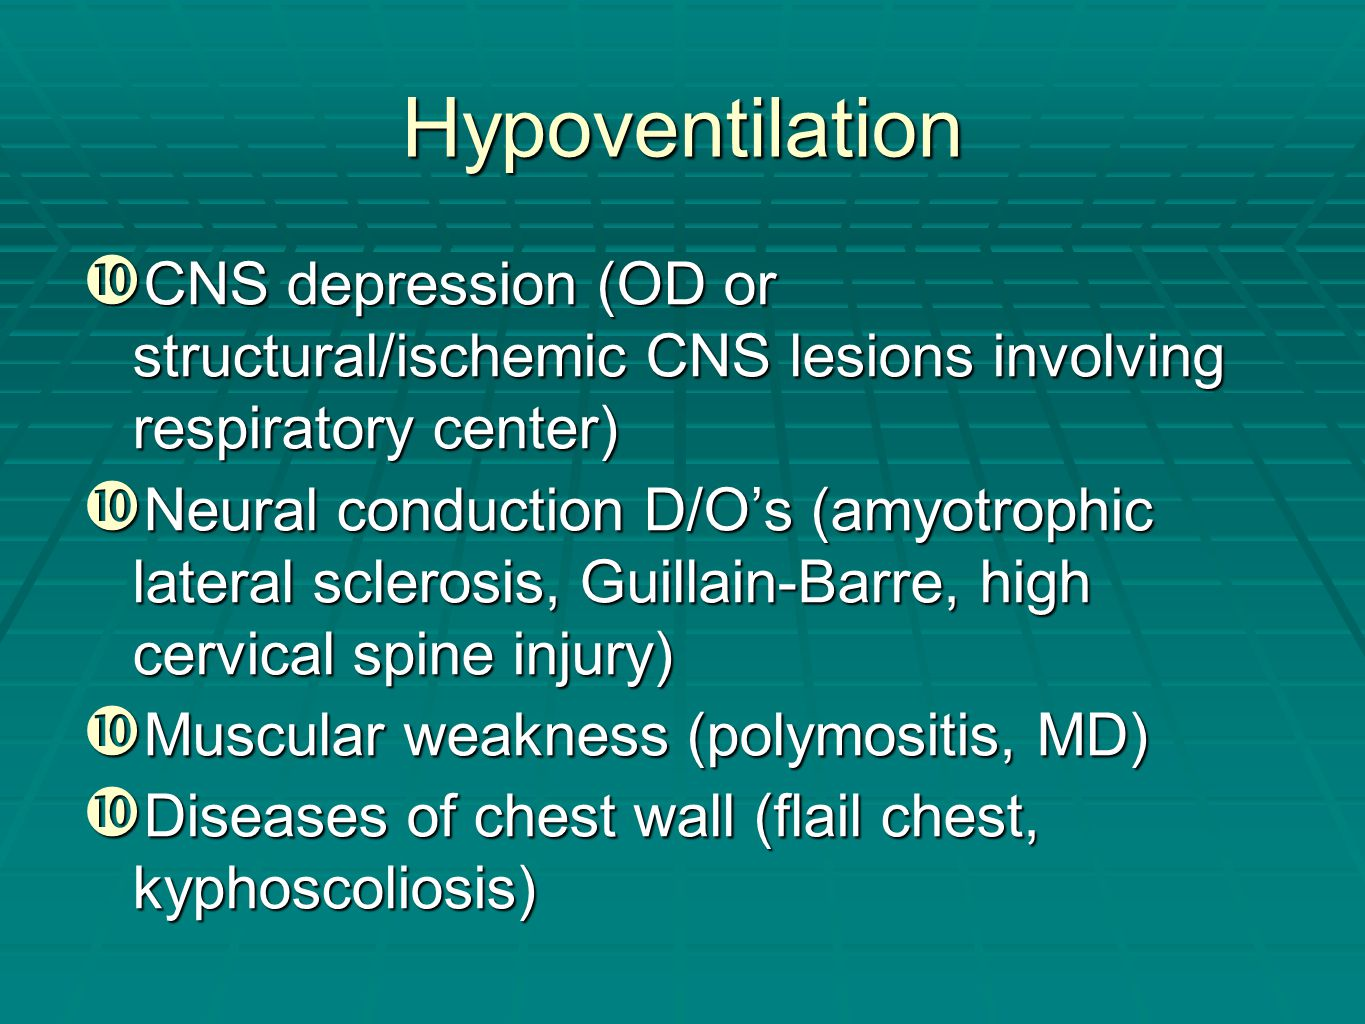 Hypoventilation CNS depression (OD or structural/ischemic CNS lesions involving respiratory center)